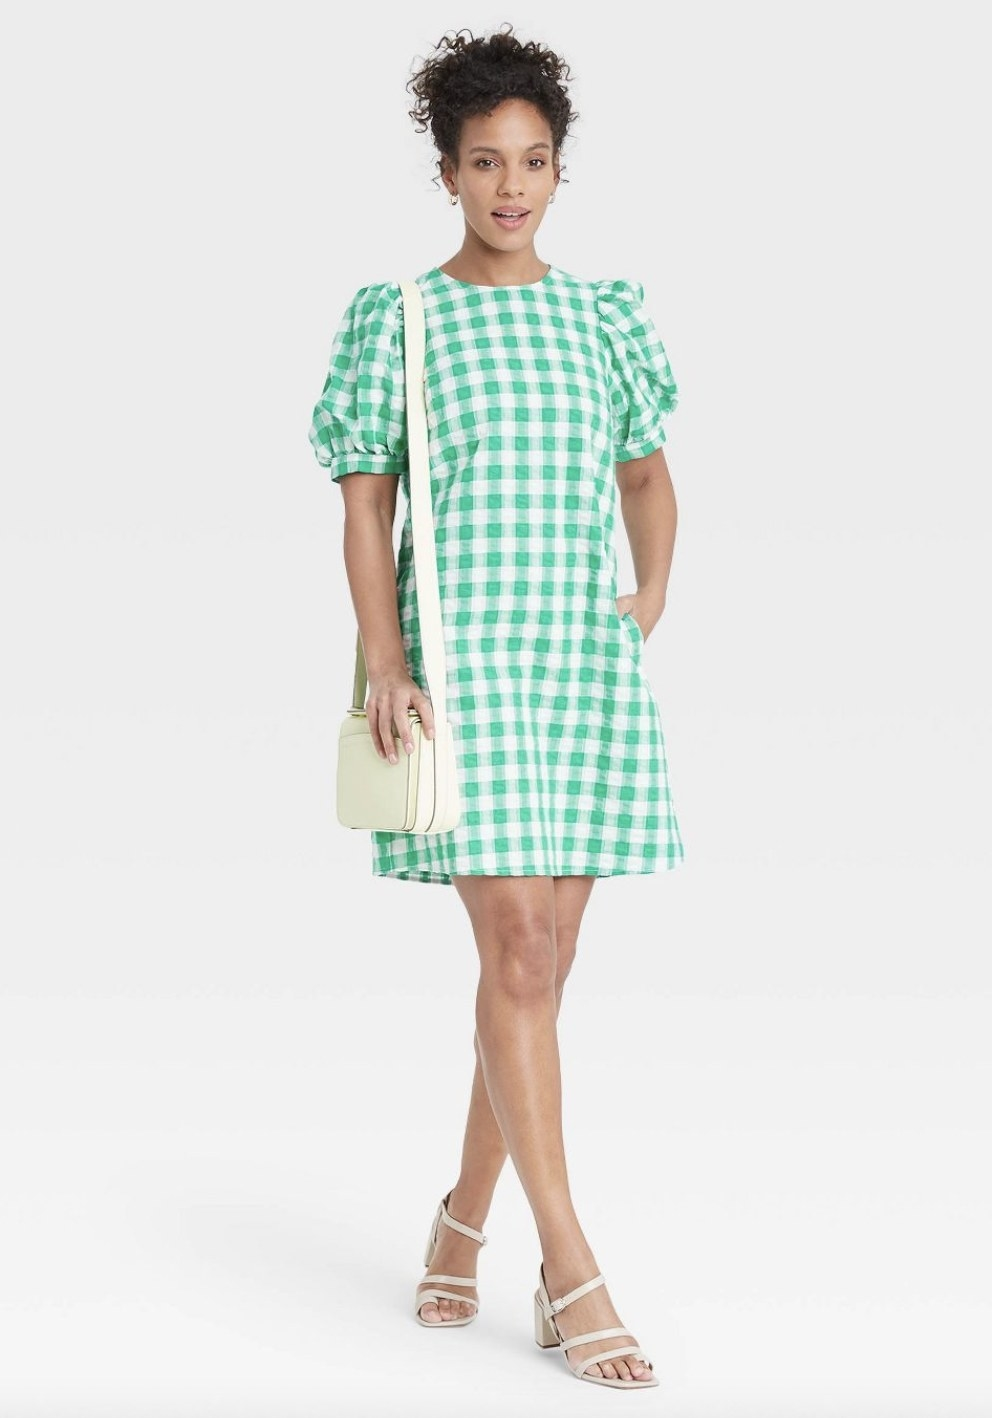 A woman wearing a green and white gingham print dress with tan sandals